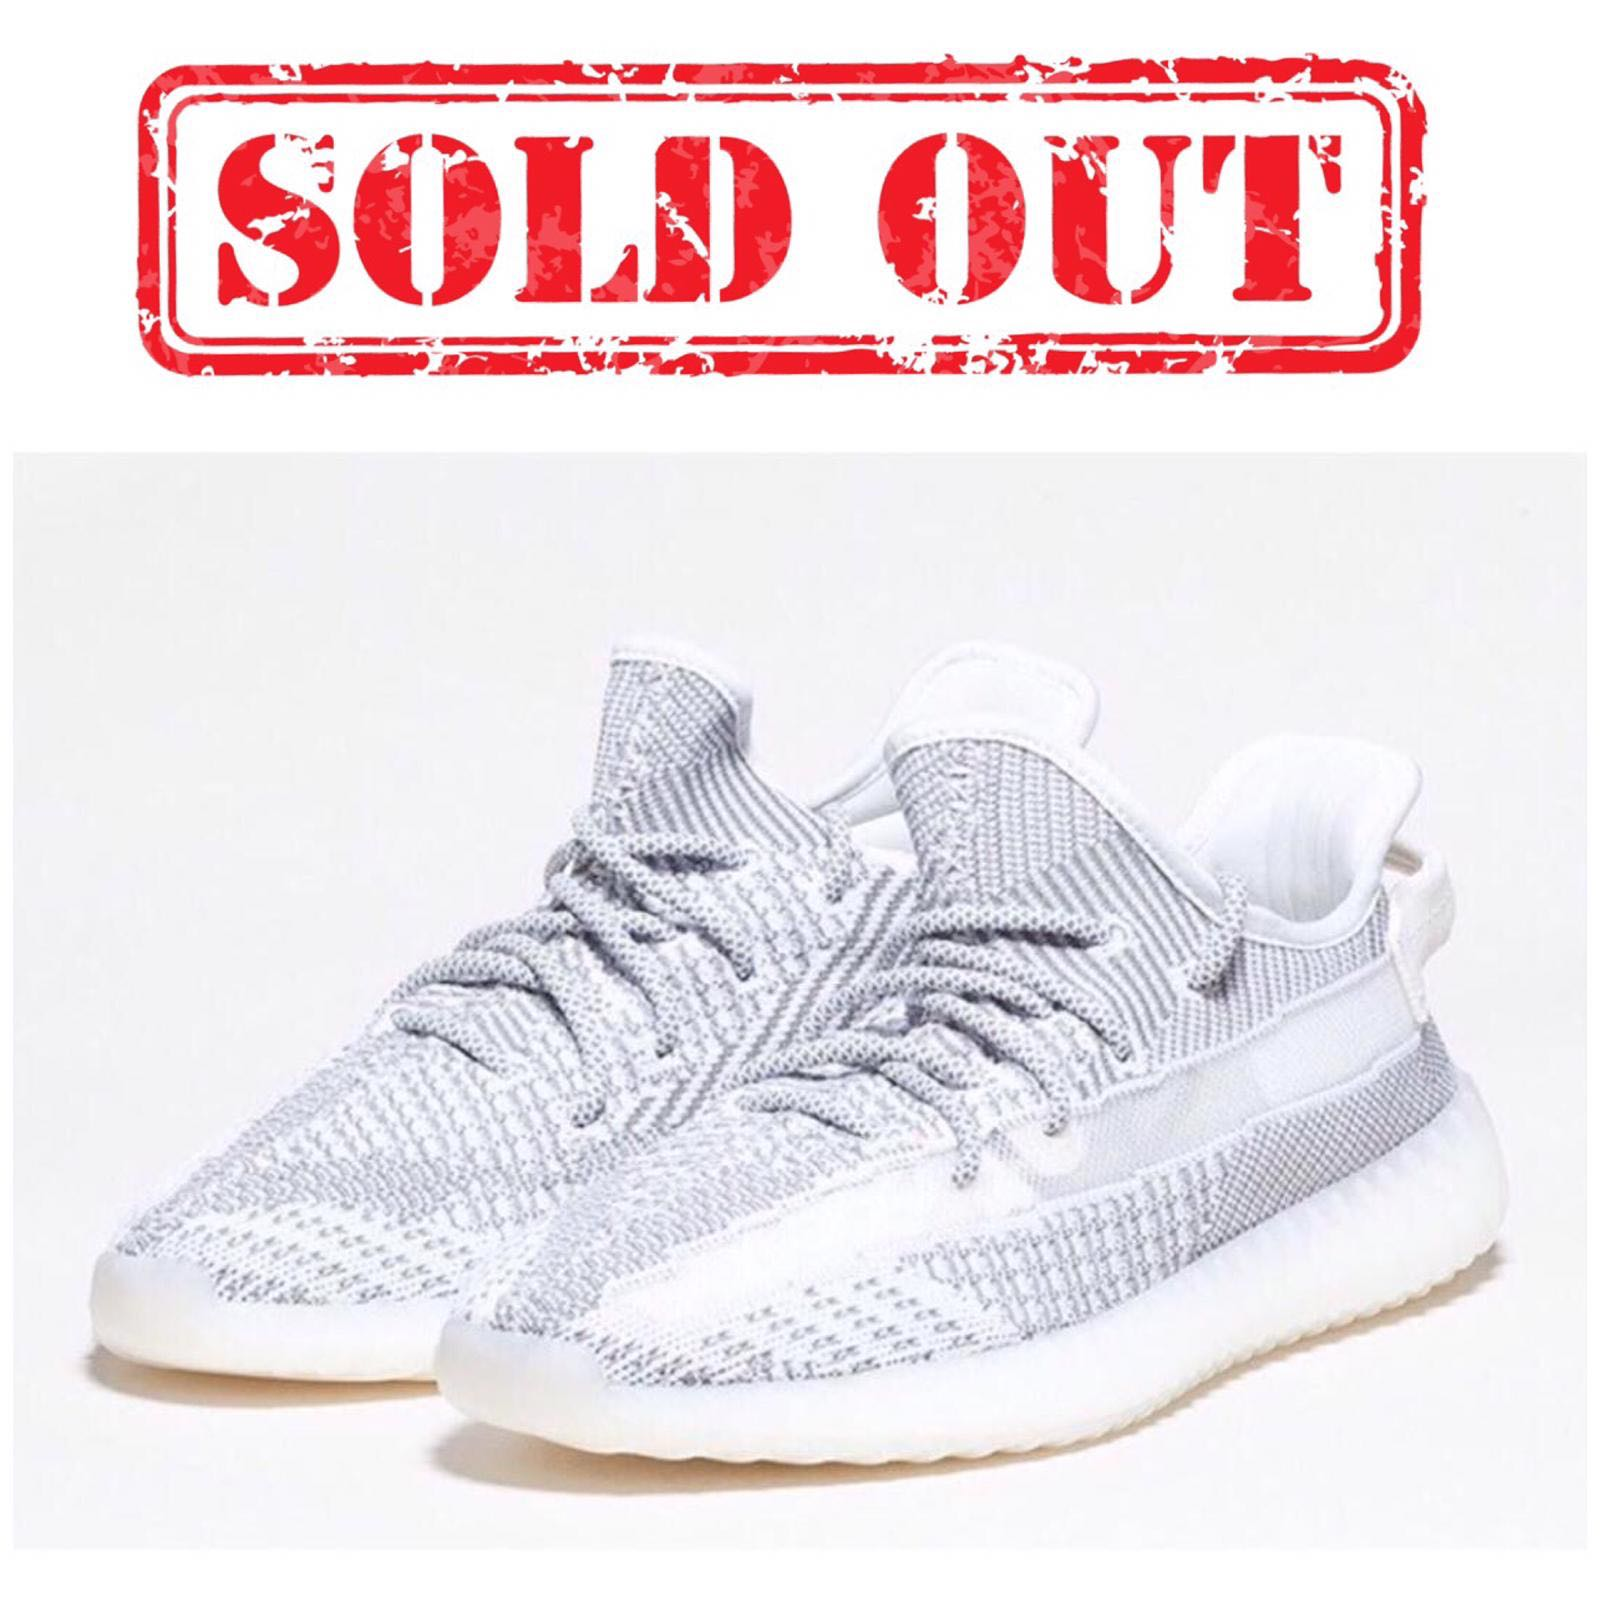 "b9e412d4cc9 The adidas Yeezy Boost 350 v2 ""Static"""